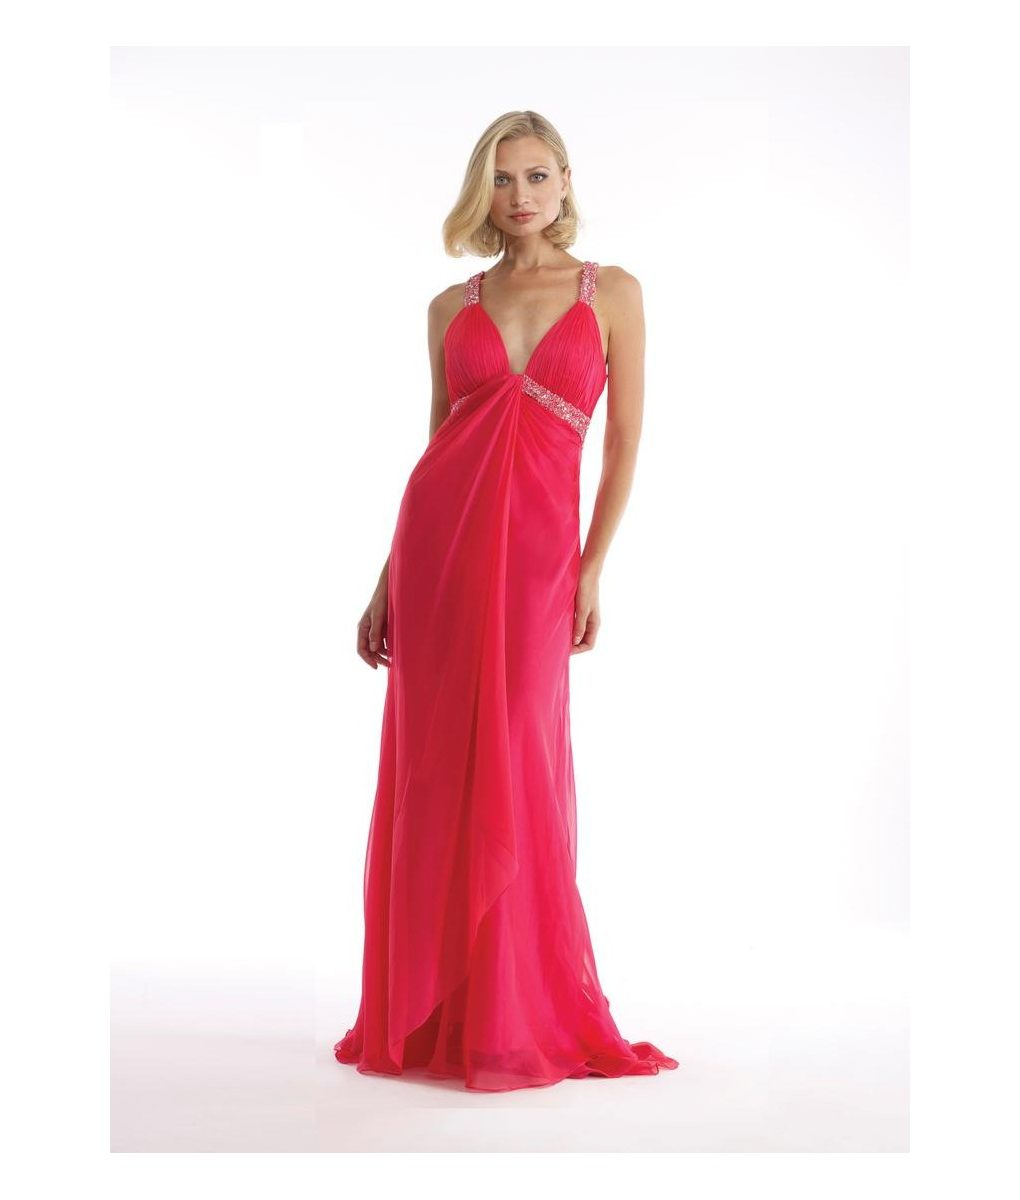 morrell-maxie-iridescent-coral-chiffon-backless-dress